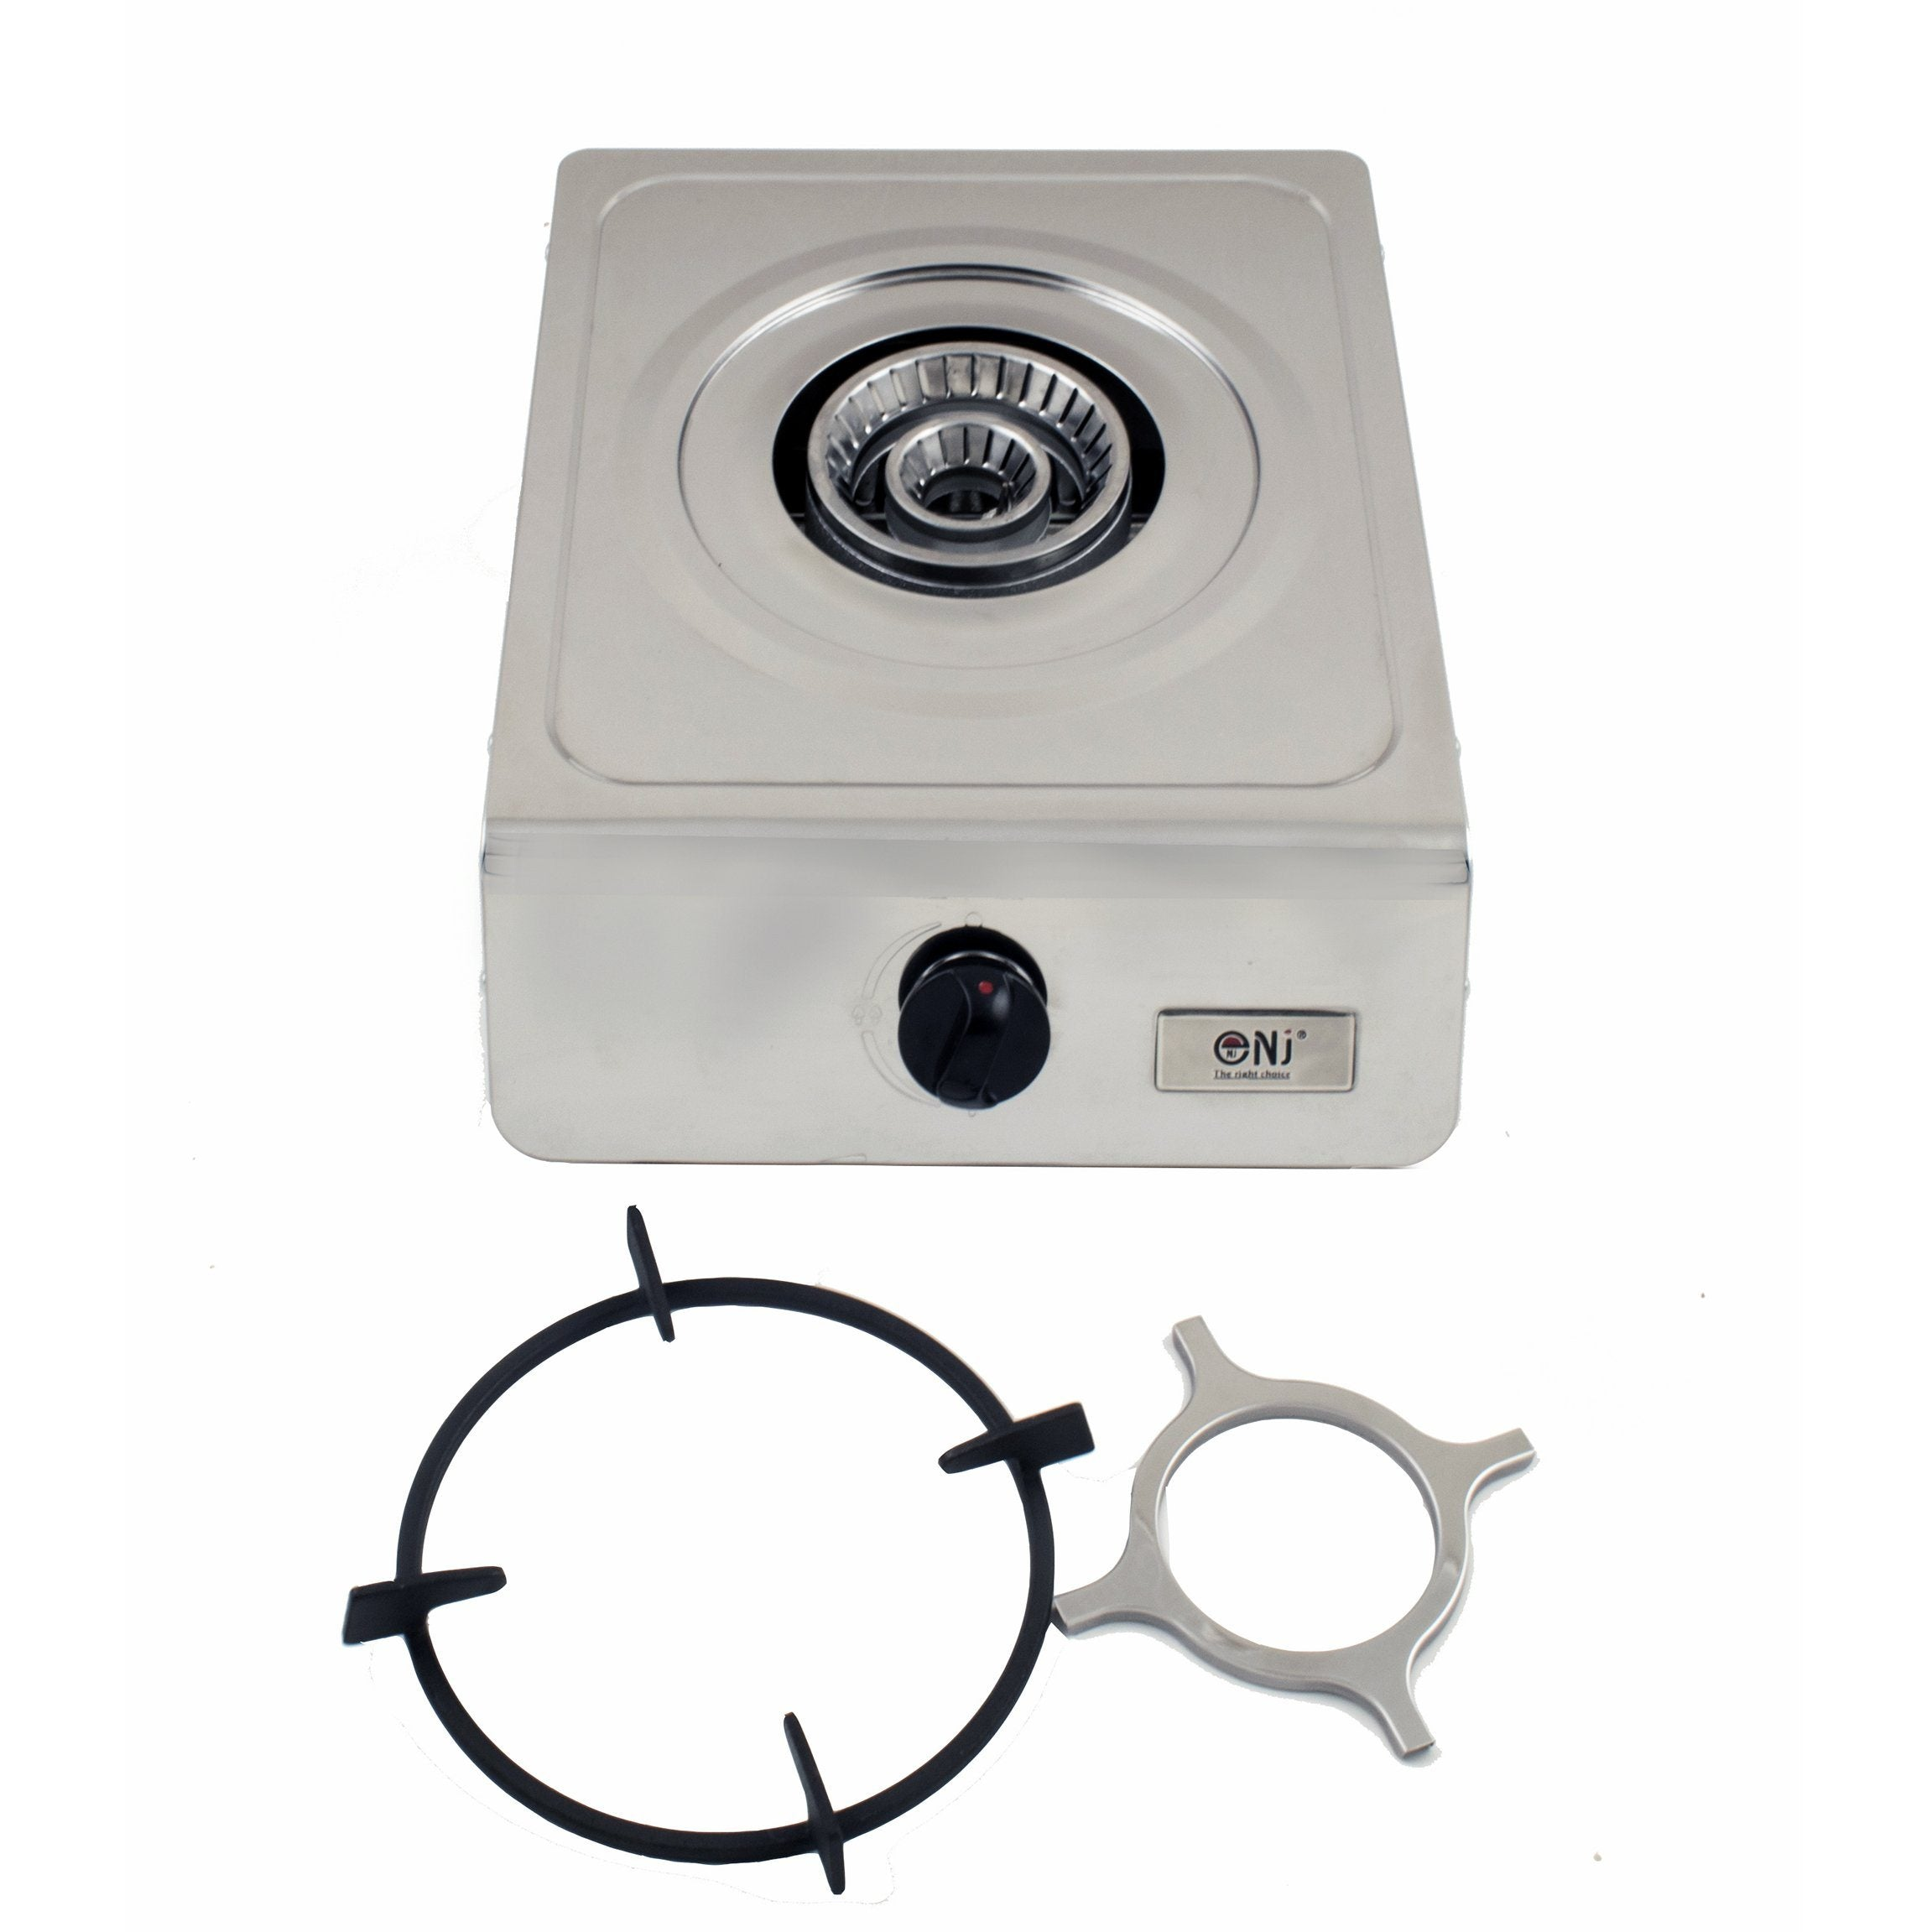 NJ-100 Portable Gas Stove Single Burner Cooker Stainless Steel Camping Hob 4.0kW